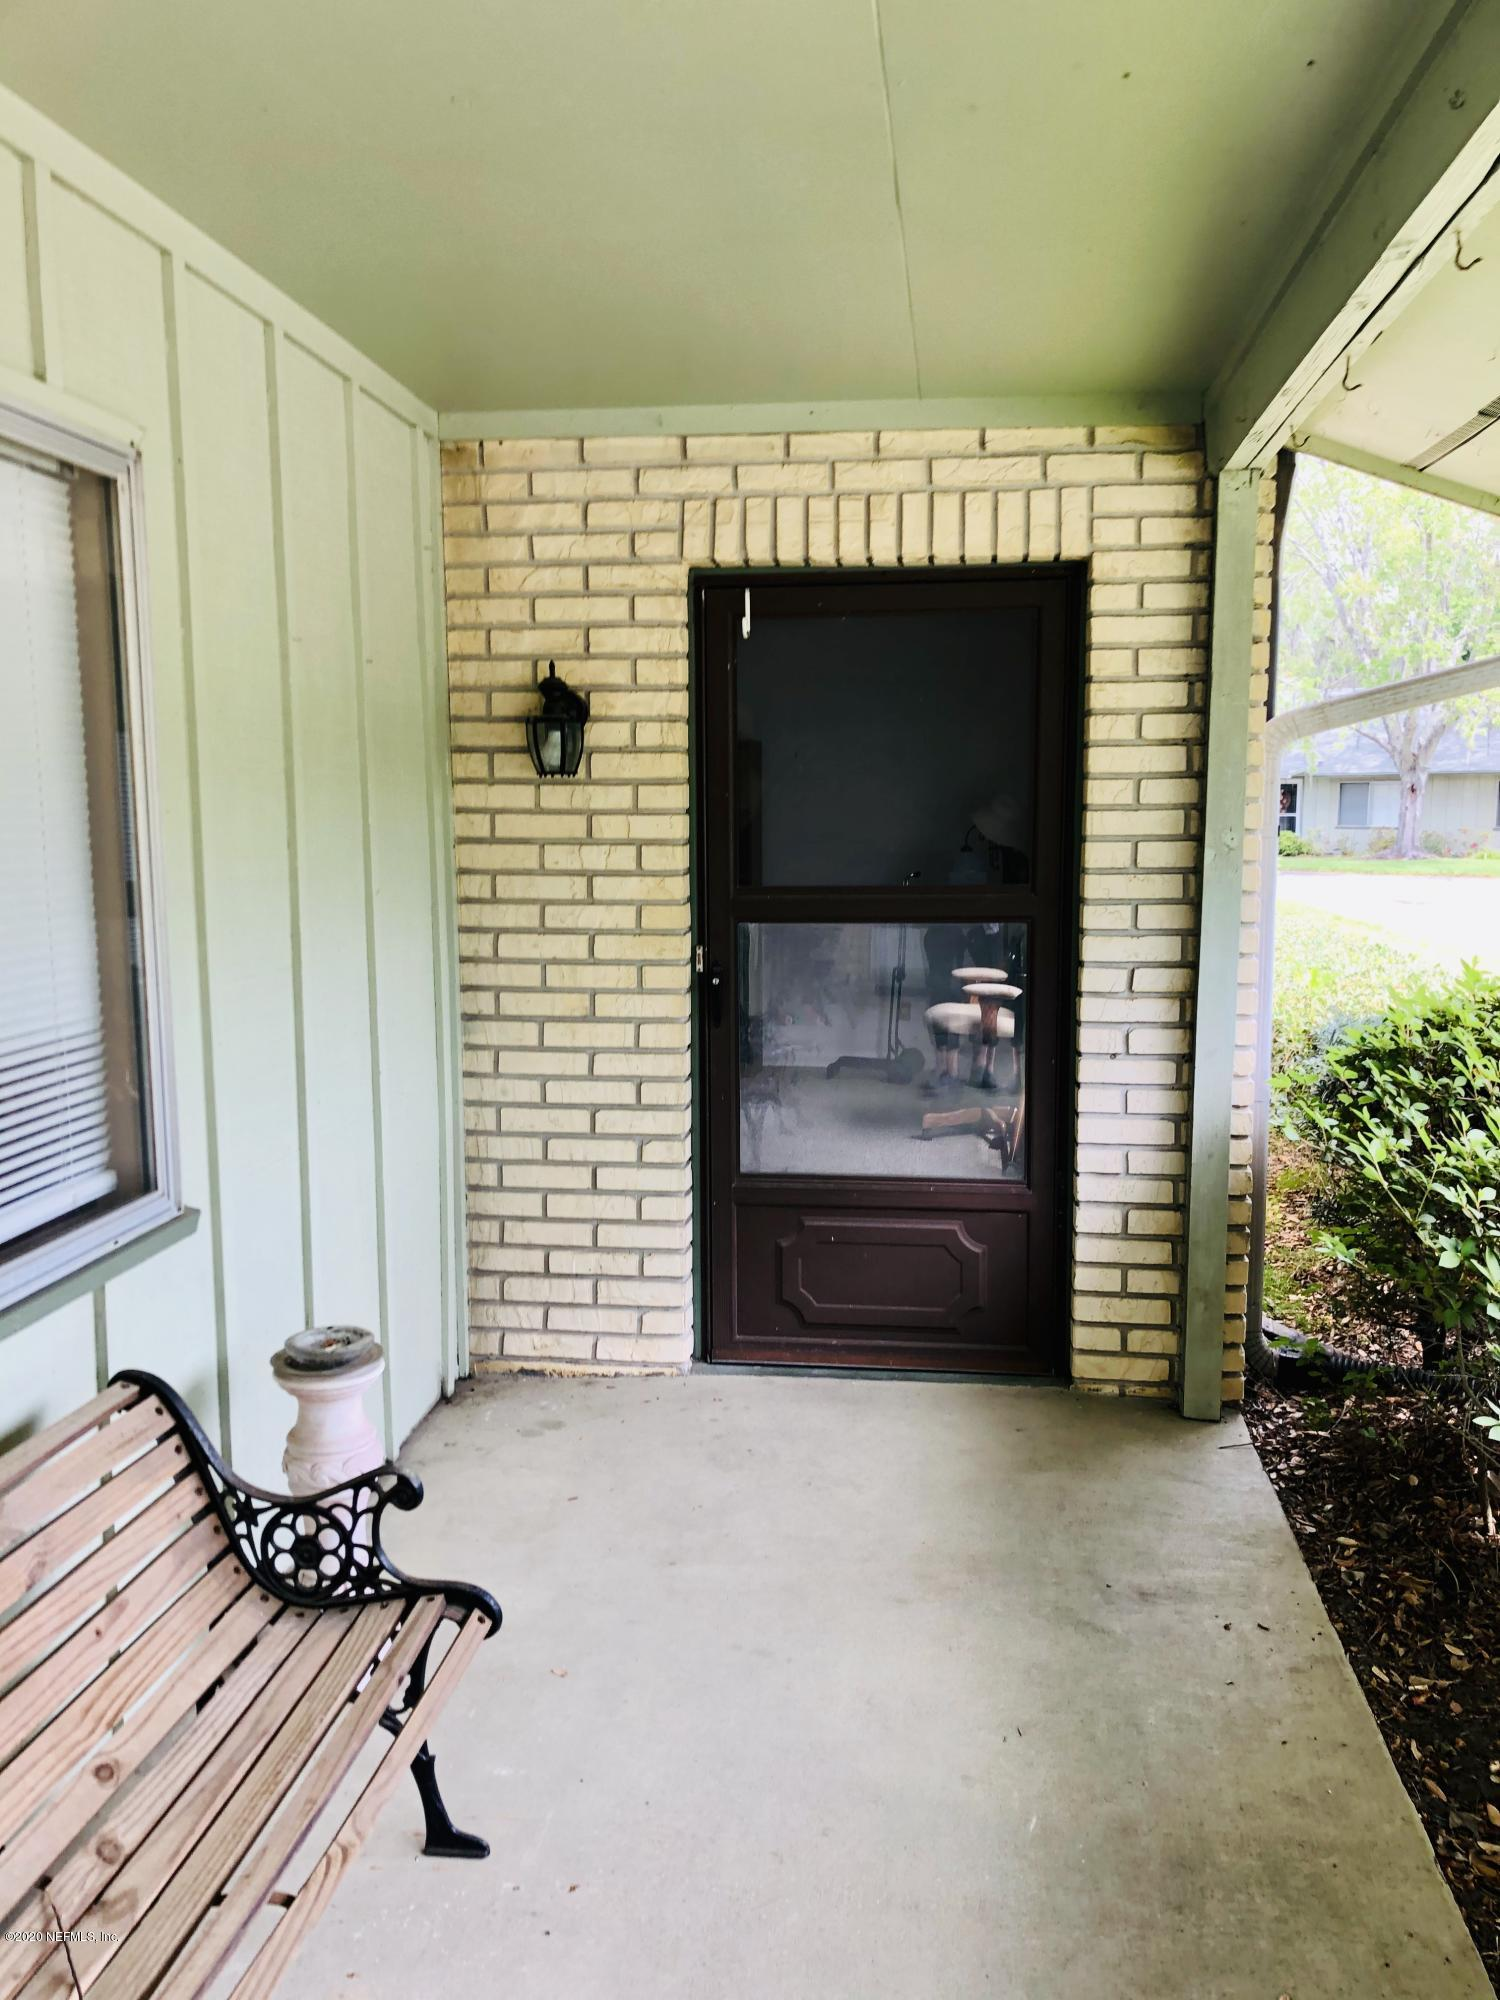 1272 THE GROVE, ORANGE PARK, FLORIDA 32073, 2 Bedrooms Bedrooms, ,2 BathroomsBathrooms,Residential,For sale,THE GROVE,1045068